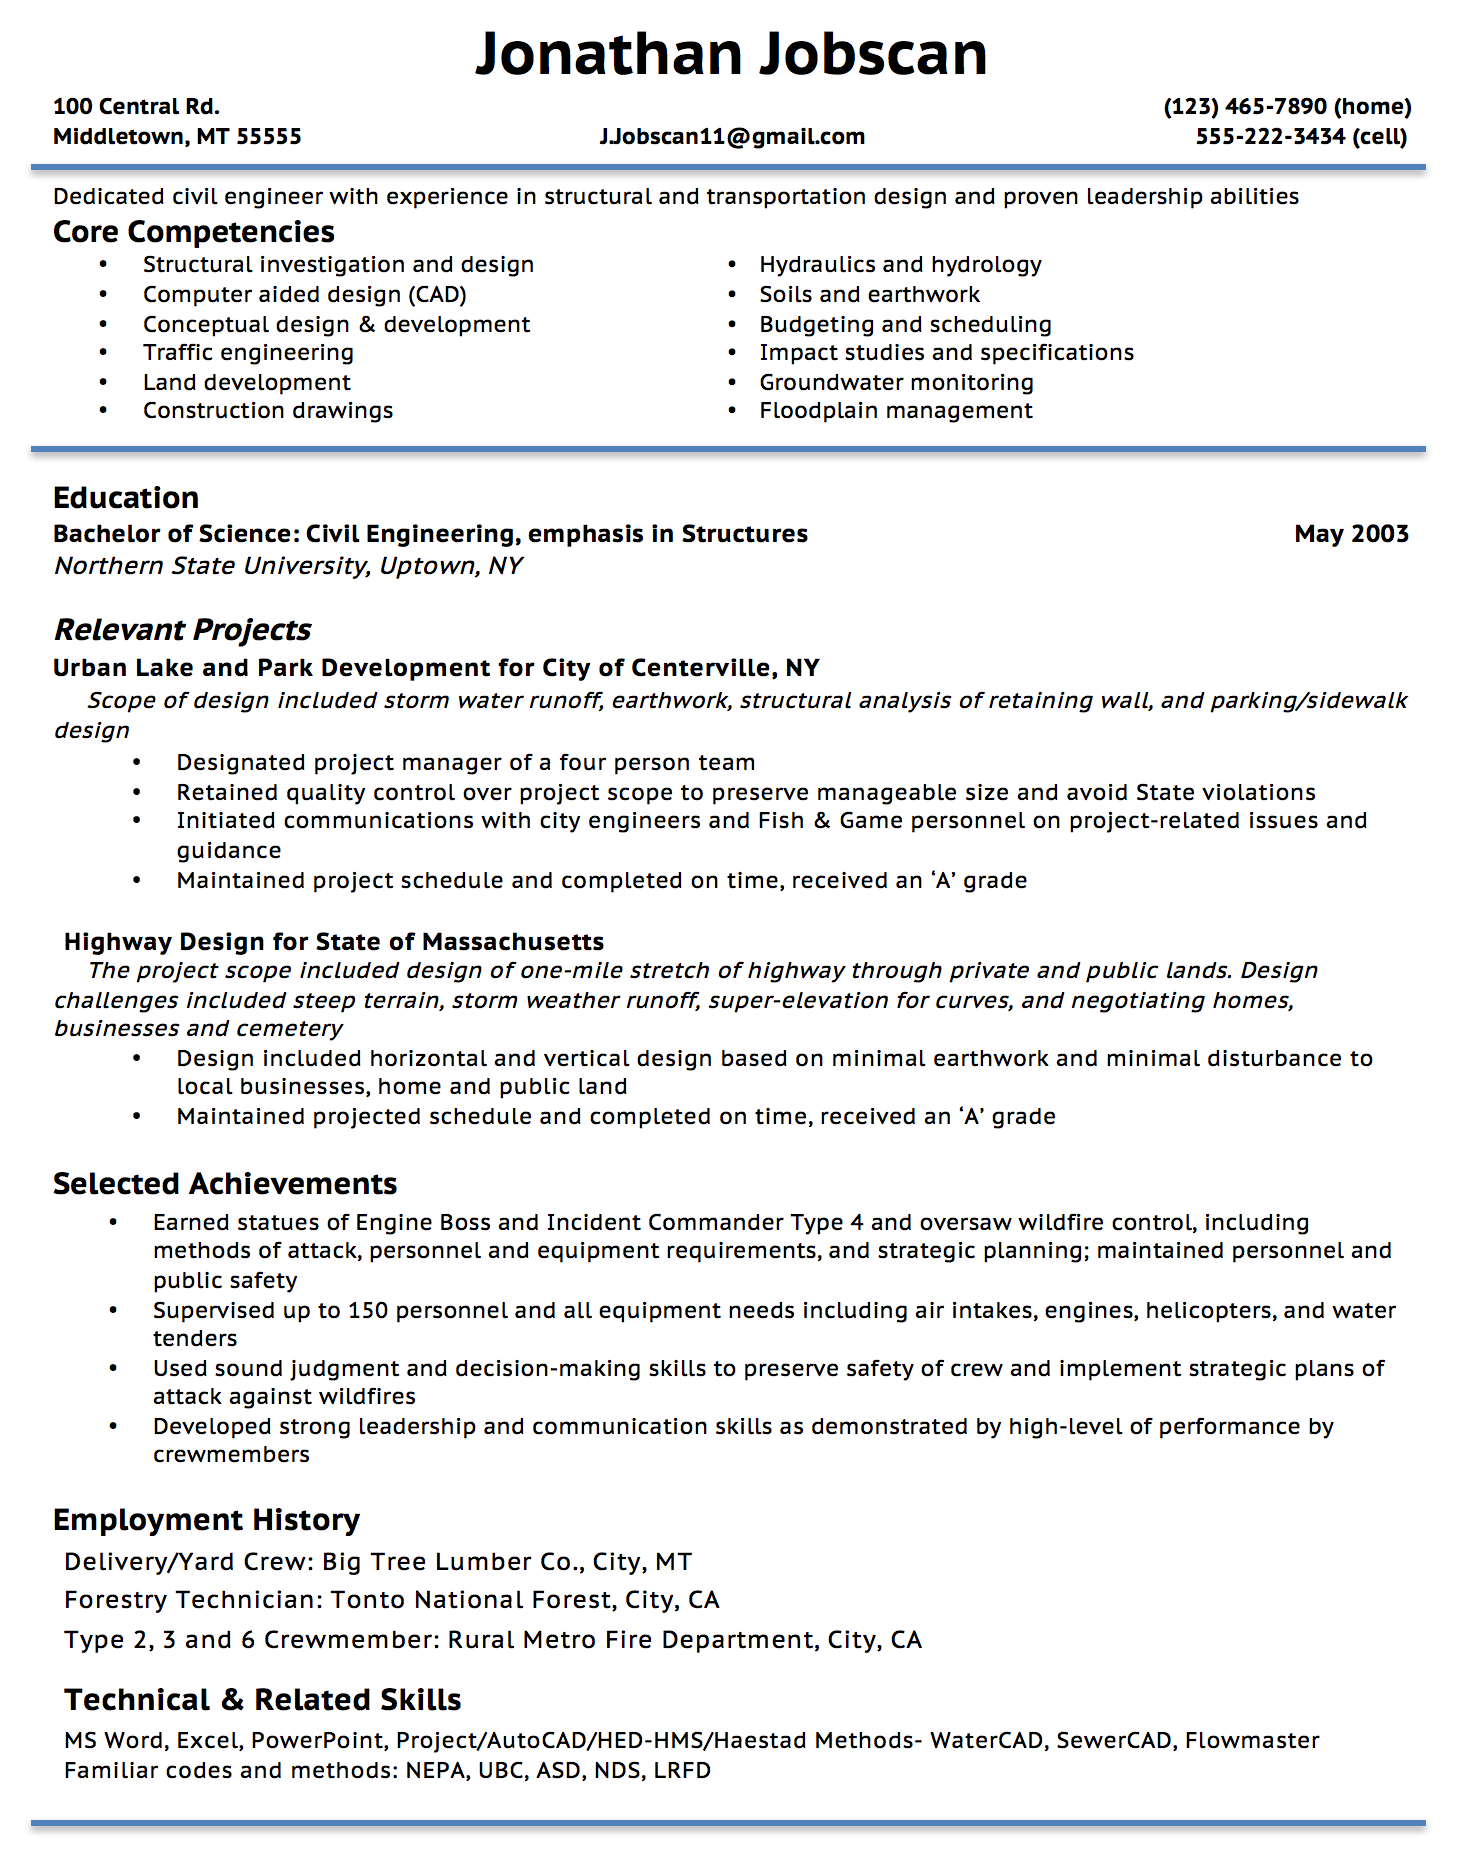 Picnictoimpeachus  Inspiring Resume Writing Guide  Jobscan With Great Example Of A Functional Resume Format With Appealing Volunteer Work On A Resume Also Thank You Letter For Resume In Addition Sample Retail Manager Resume And Hvac Resume Template As Well As Email For Resume Additionally Where Can I Make A Free Resume From Jobscanco With Picnictoimpeachus  Great Resume Writing Guide  Jobscan With Appealing Example Of A Functional Resume Format And Inspiring Volunteer Work On A Resume Also Thank You Letter For Resume In Addition Sample Retail Manager Resume From Jobscanco